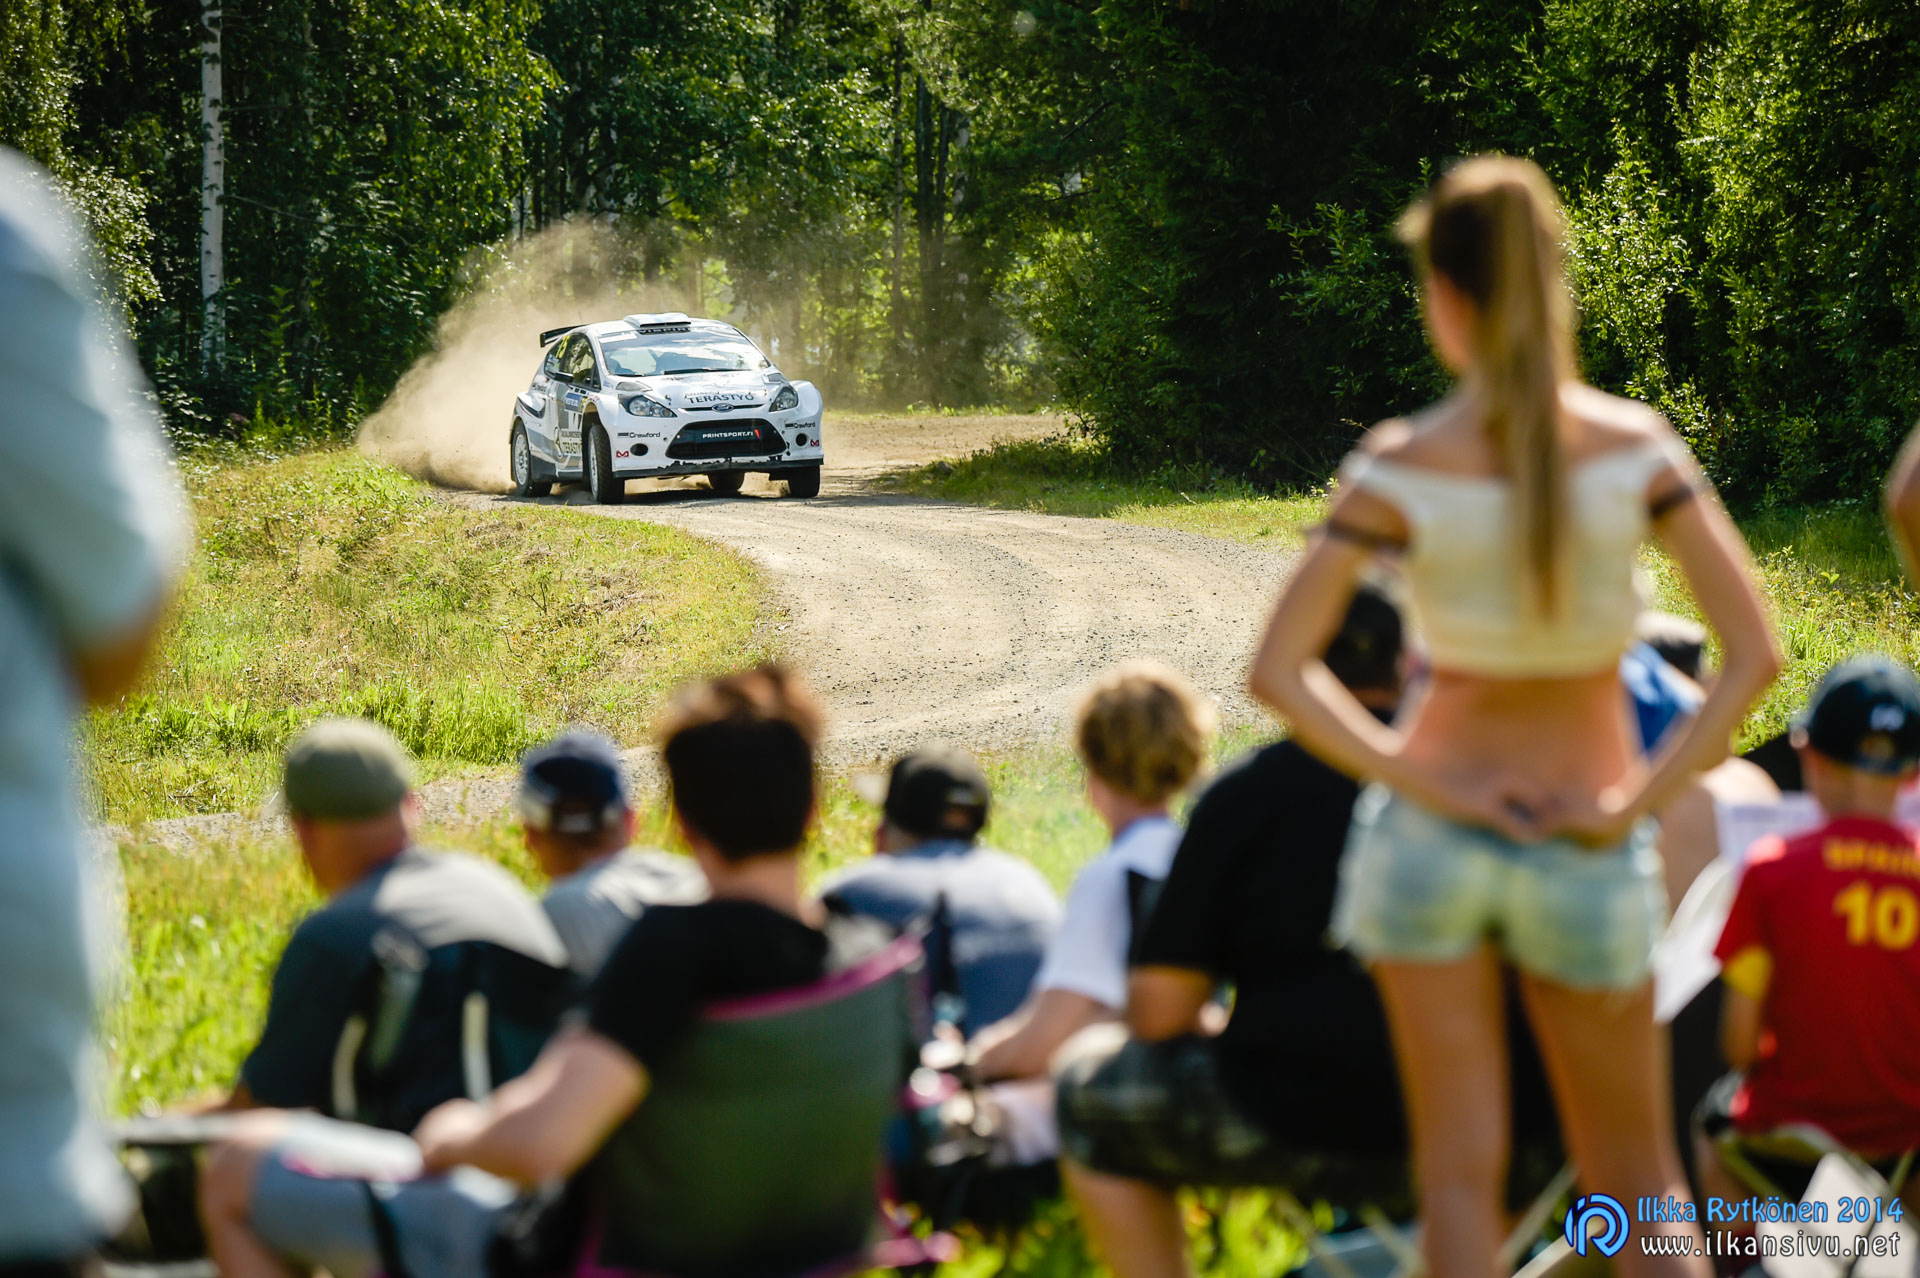 1/1000 s, f/6,3, ISO 125, 230 mm ( AF-S Nikkor 80–400mm f/4.5-5.6G ED VR), Jouni Virtanen, Neste Oil Rally Finland 2014